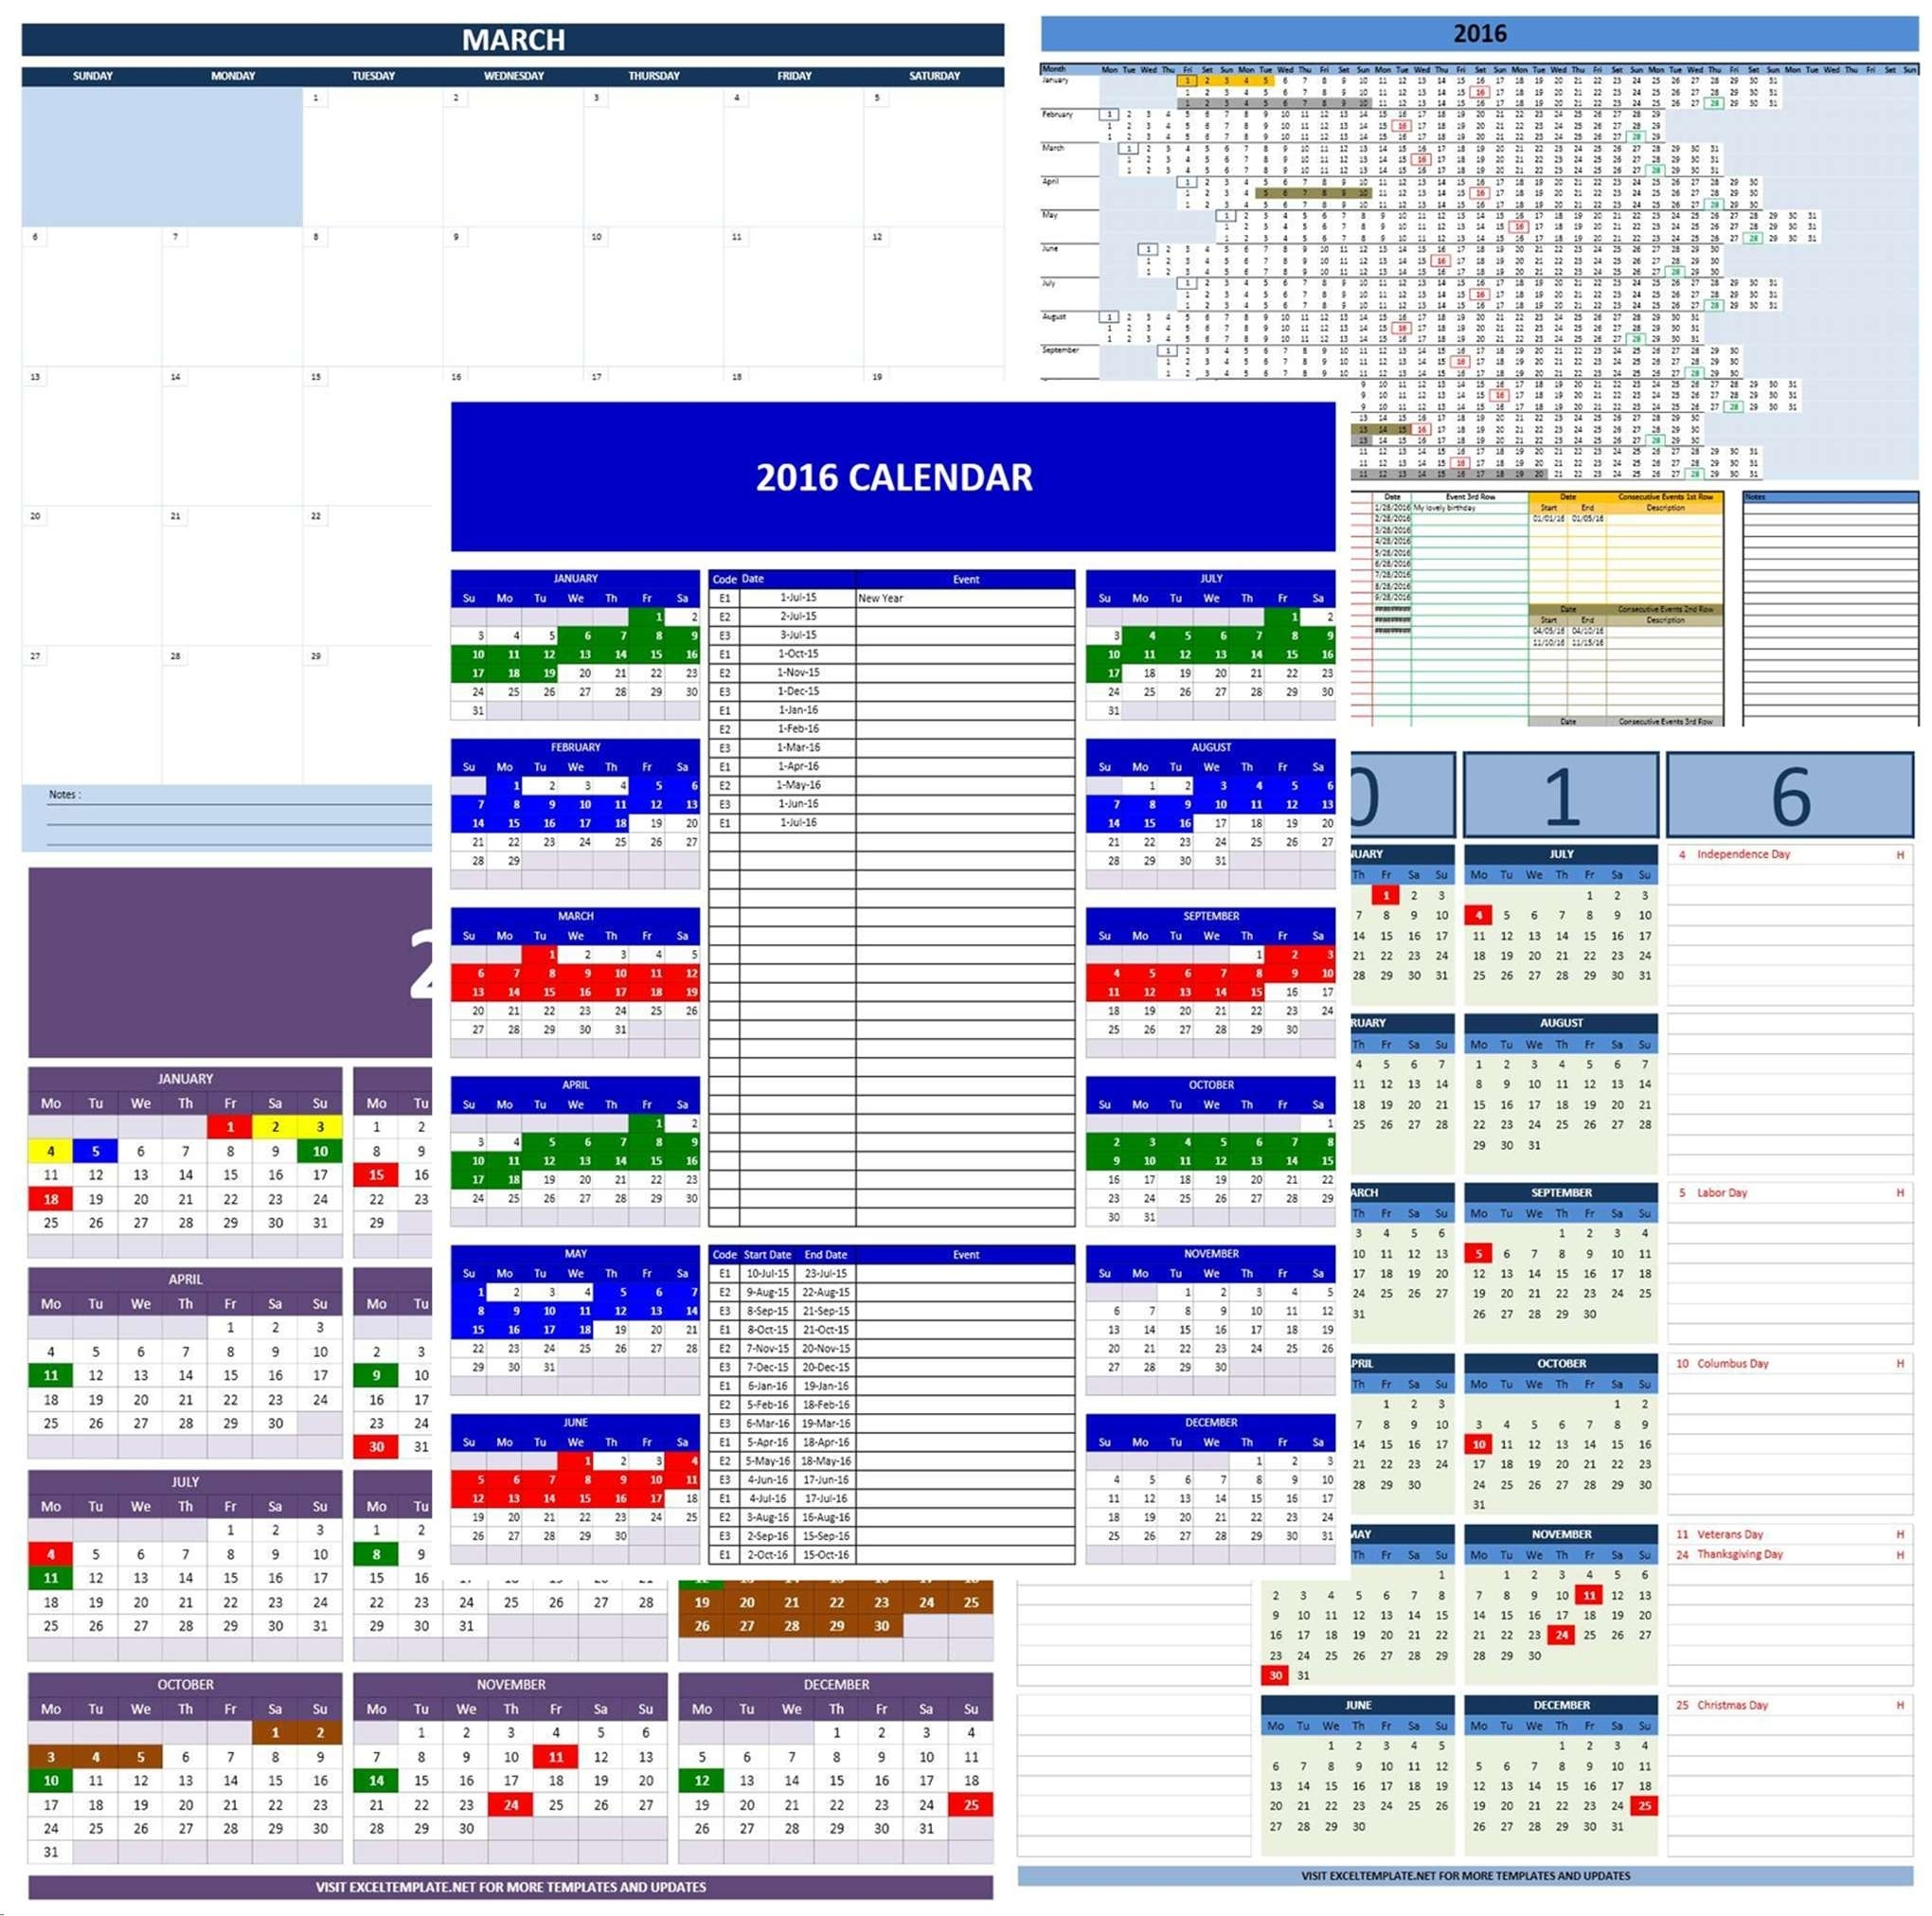 Booking Calendar Excel - Sasolo.annafora.co